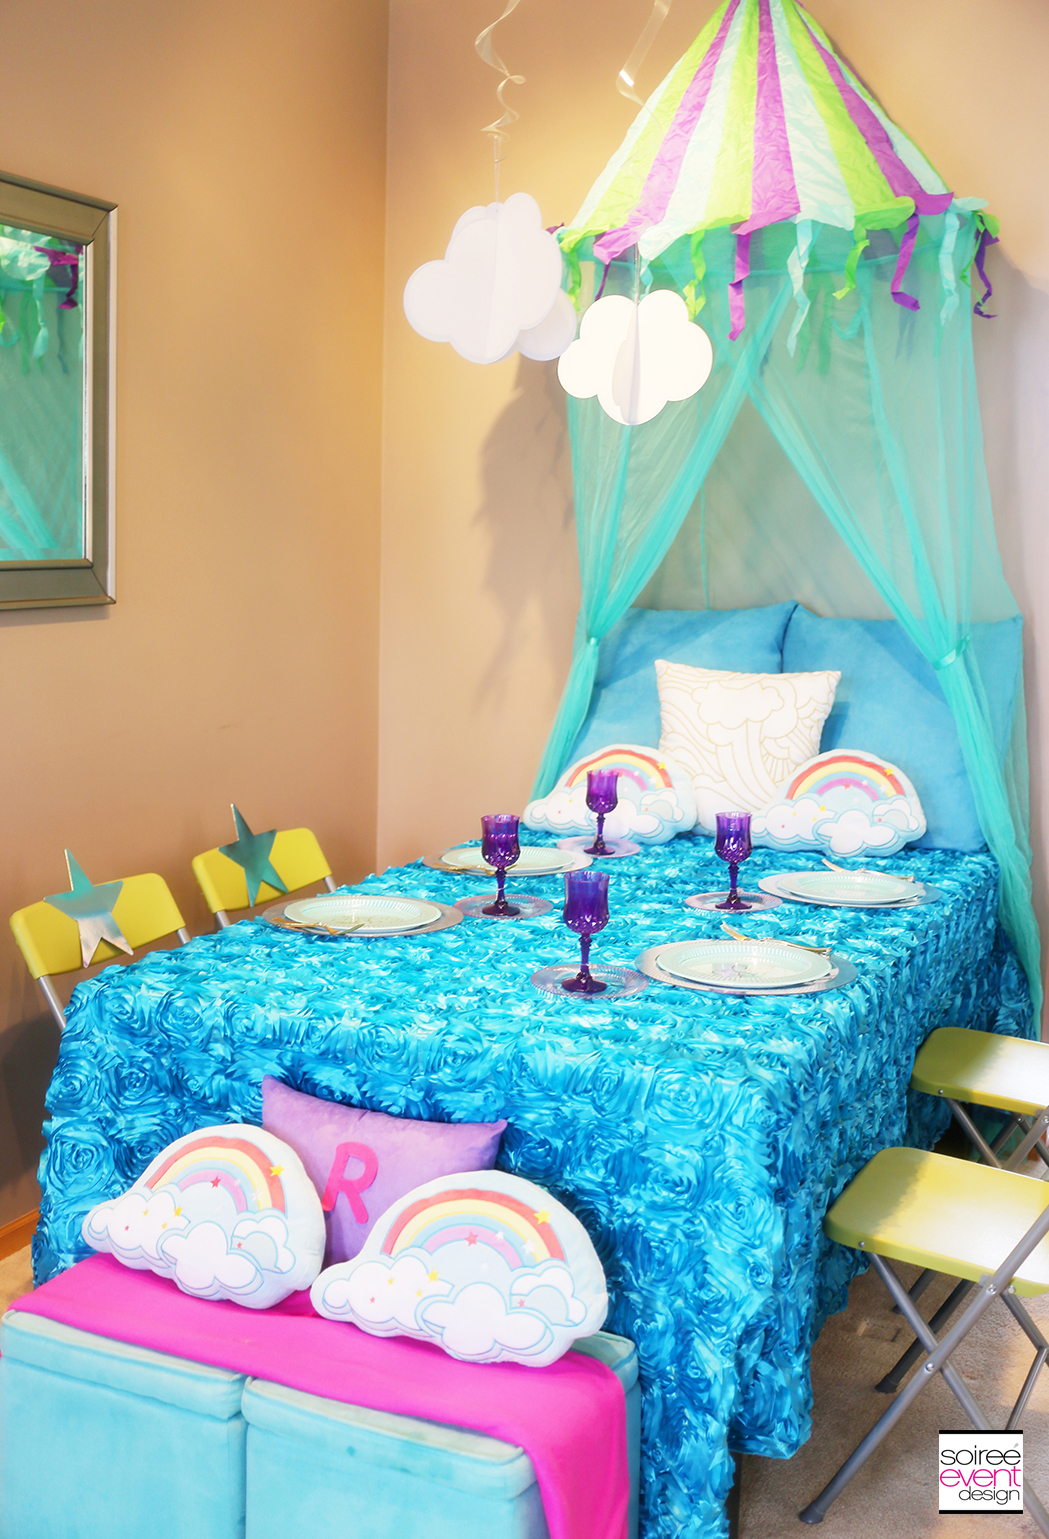 Sleepover party Ideas - Canopy Bed Table